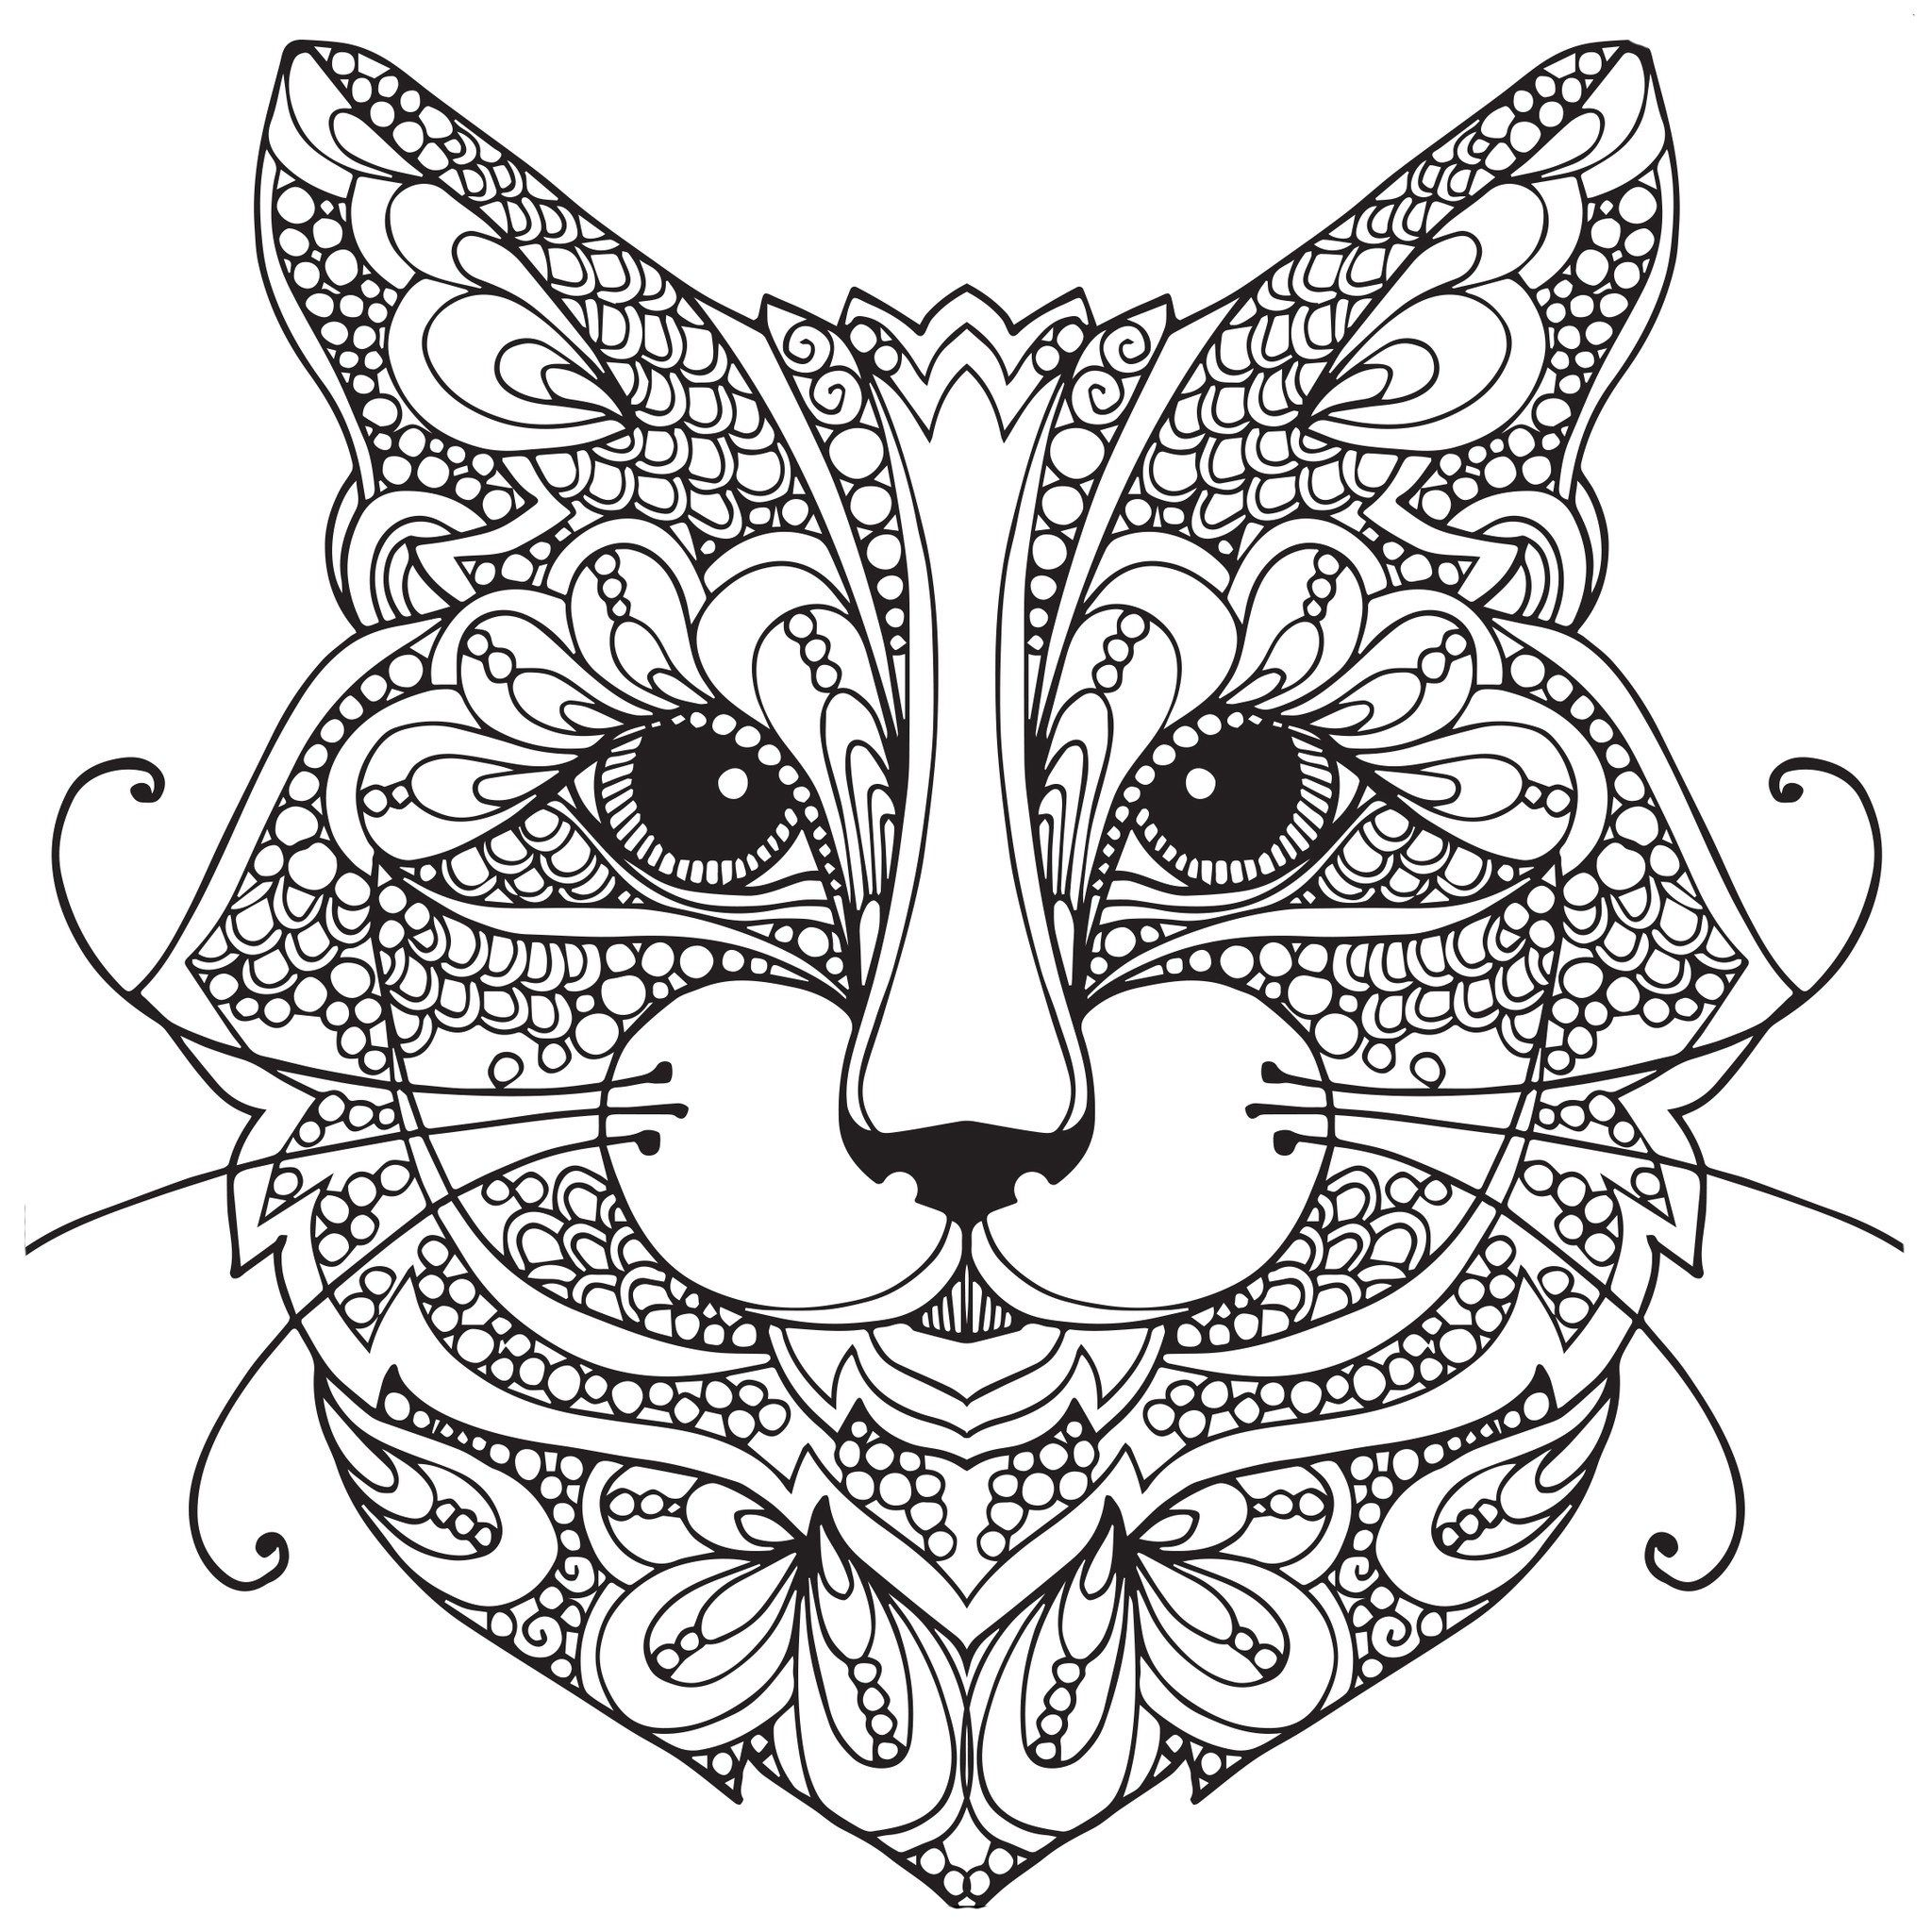 Adult Coloring Pages: Cat-1 | quiling | Pinterest | Mandalas ...